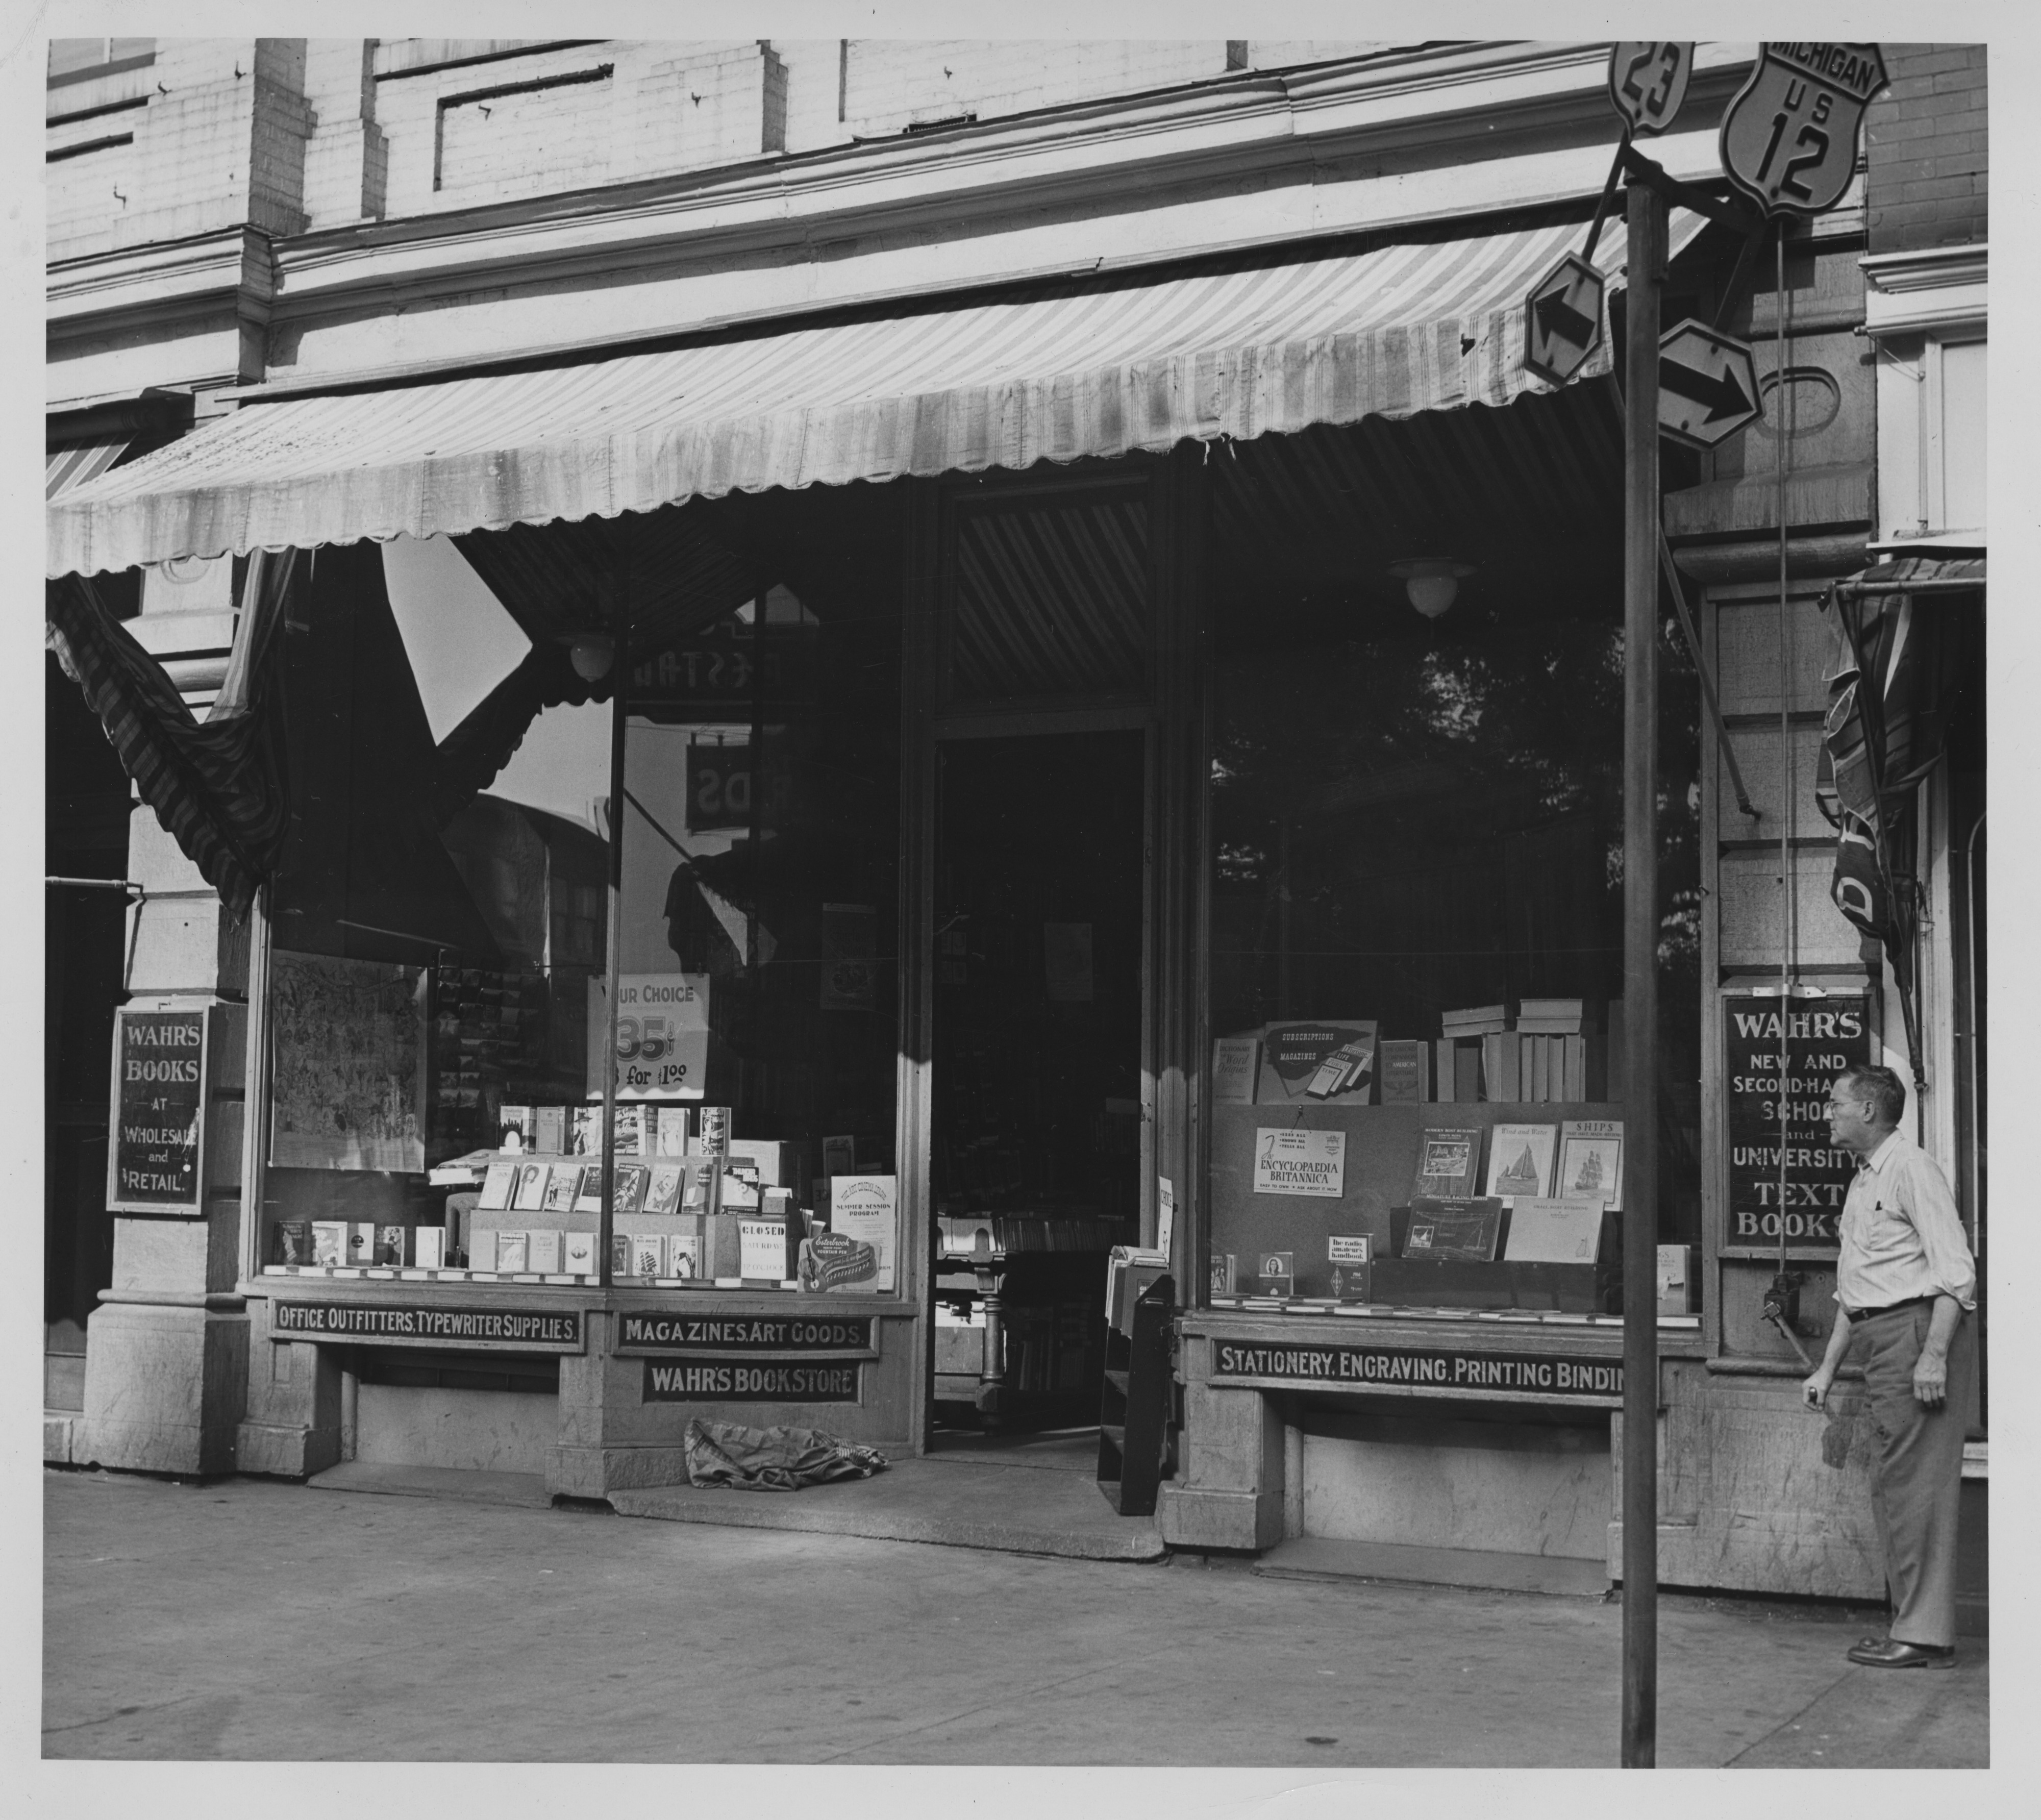 Wahr's Book Store, 1946 image